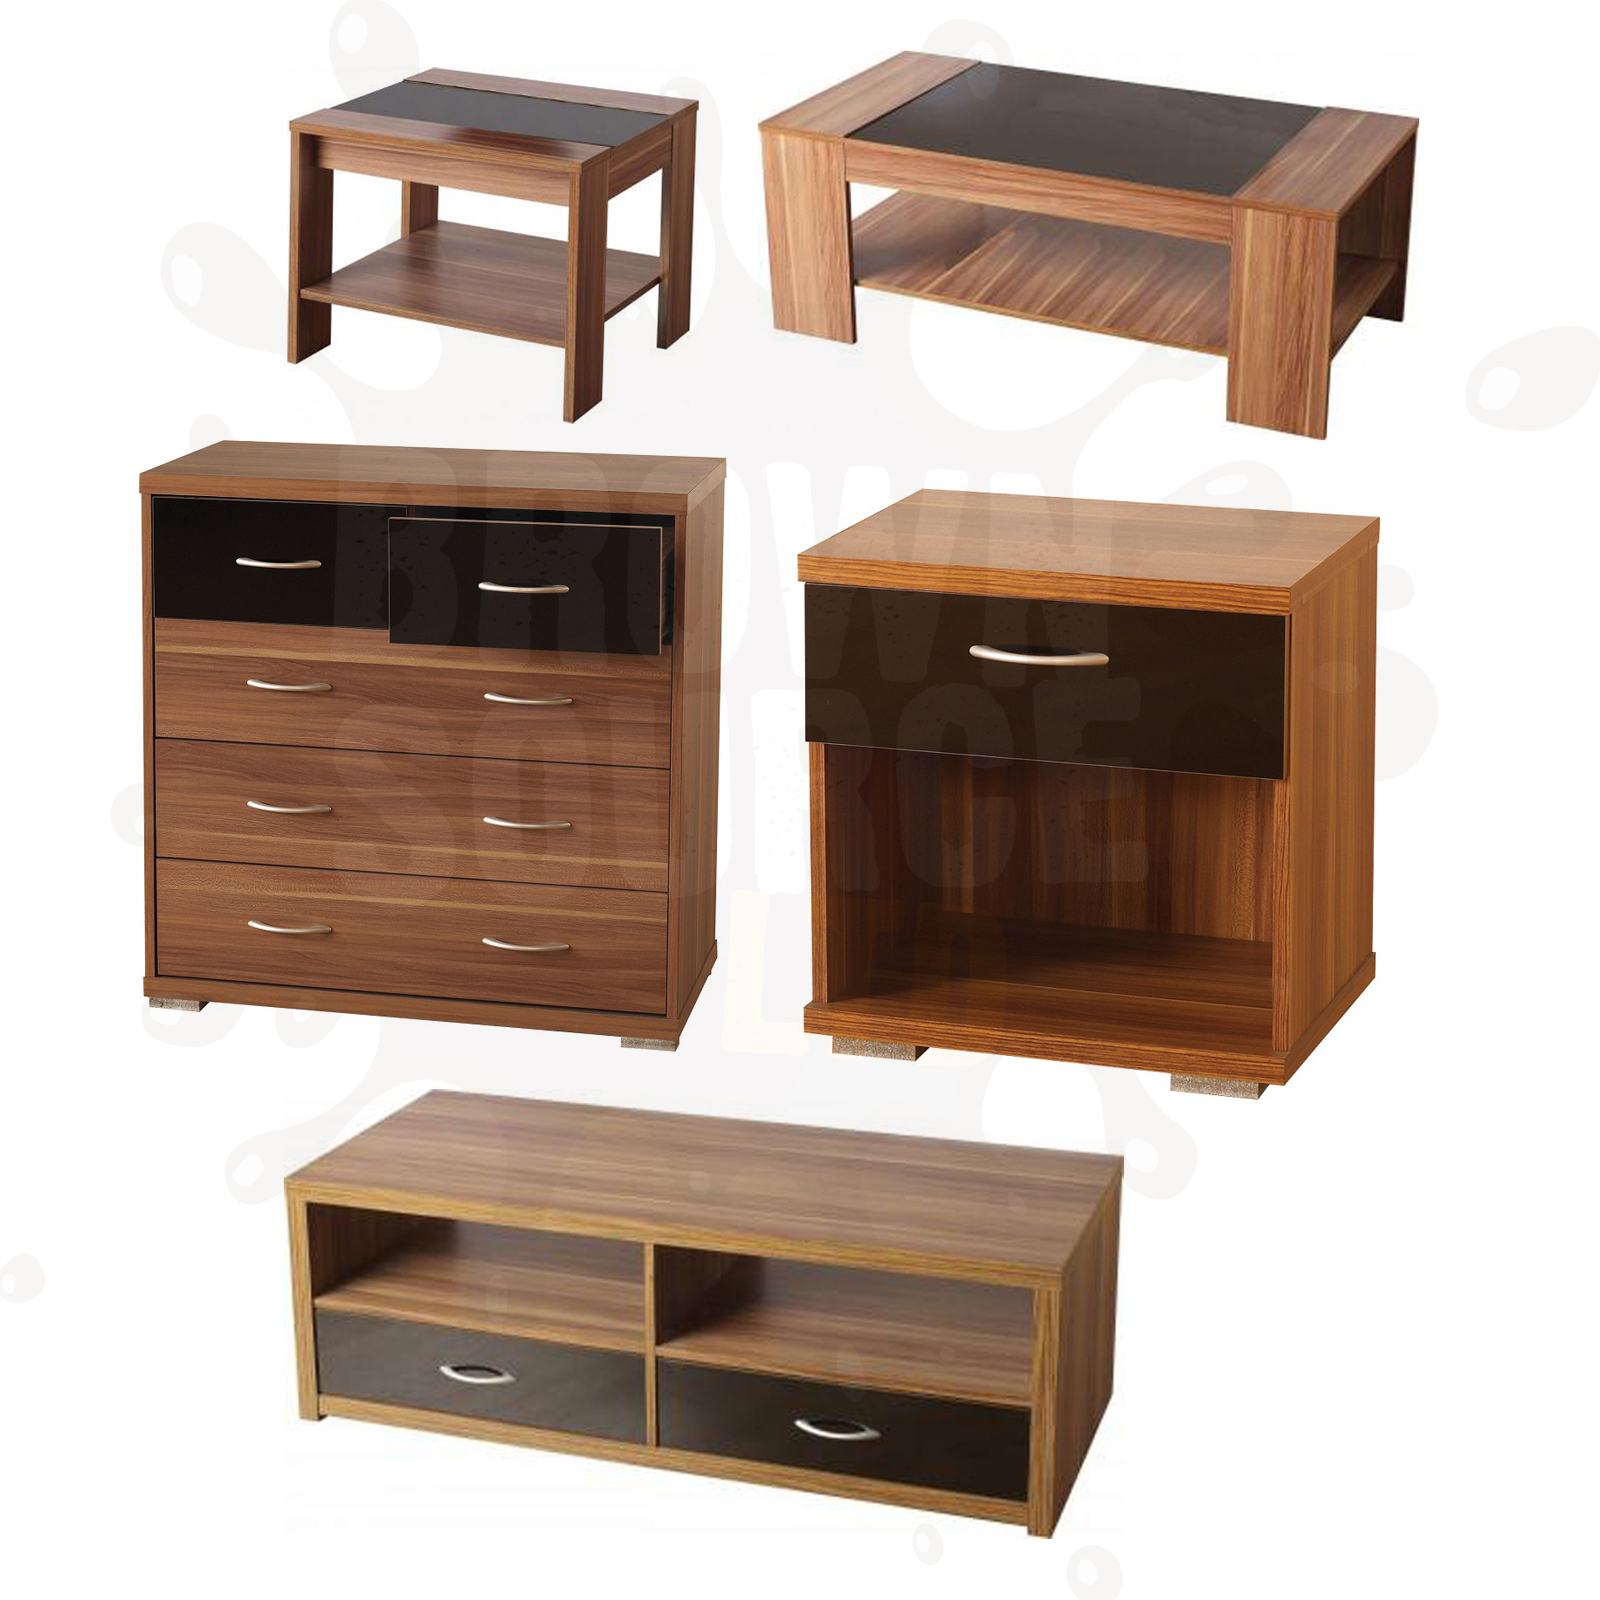 Walnut black coffee table tv stand lamp table chest of drawers bedside cabinet ebay Coffee table tv stand set